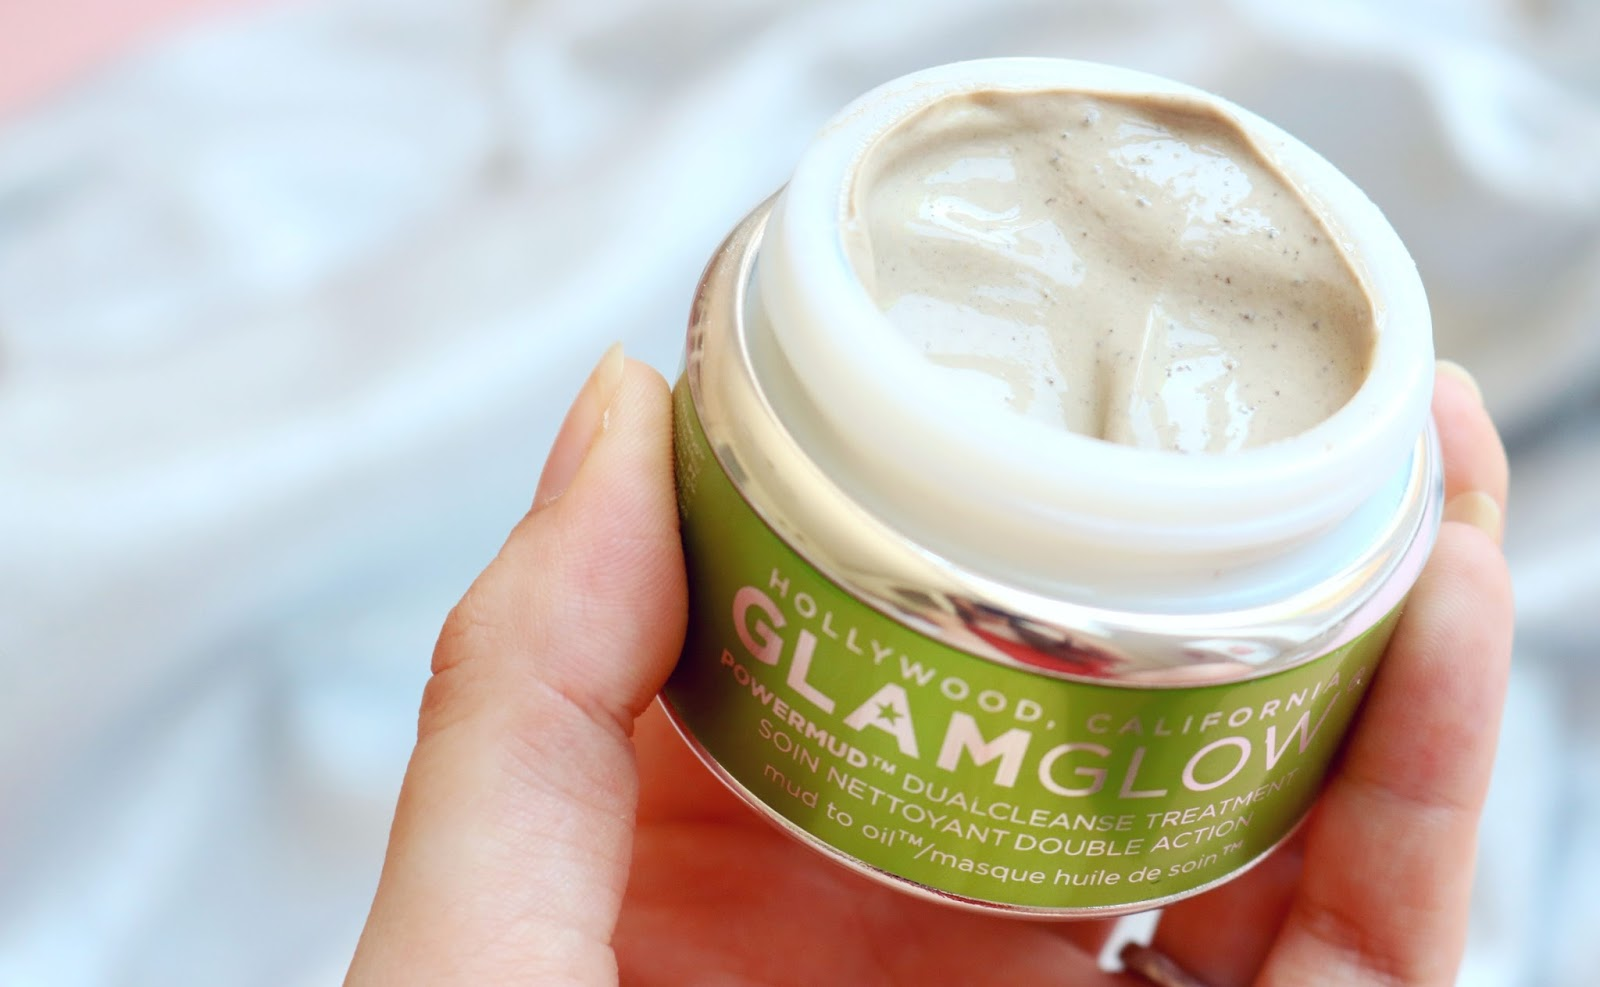 A blog post reviewing the Glamglow PowerMud Dualcleanse Treatment.